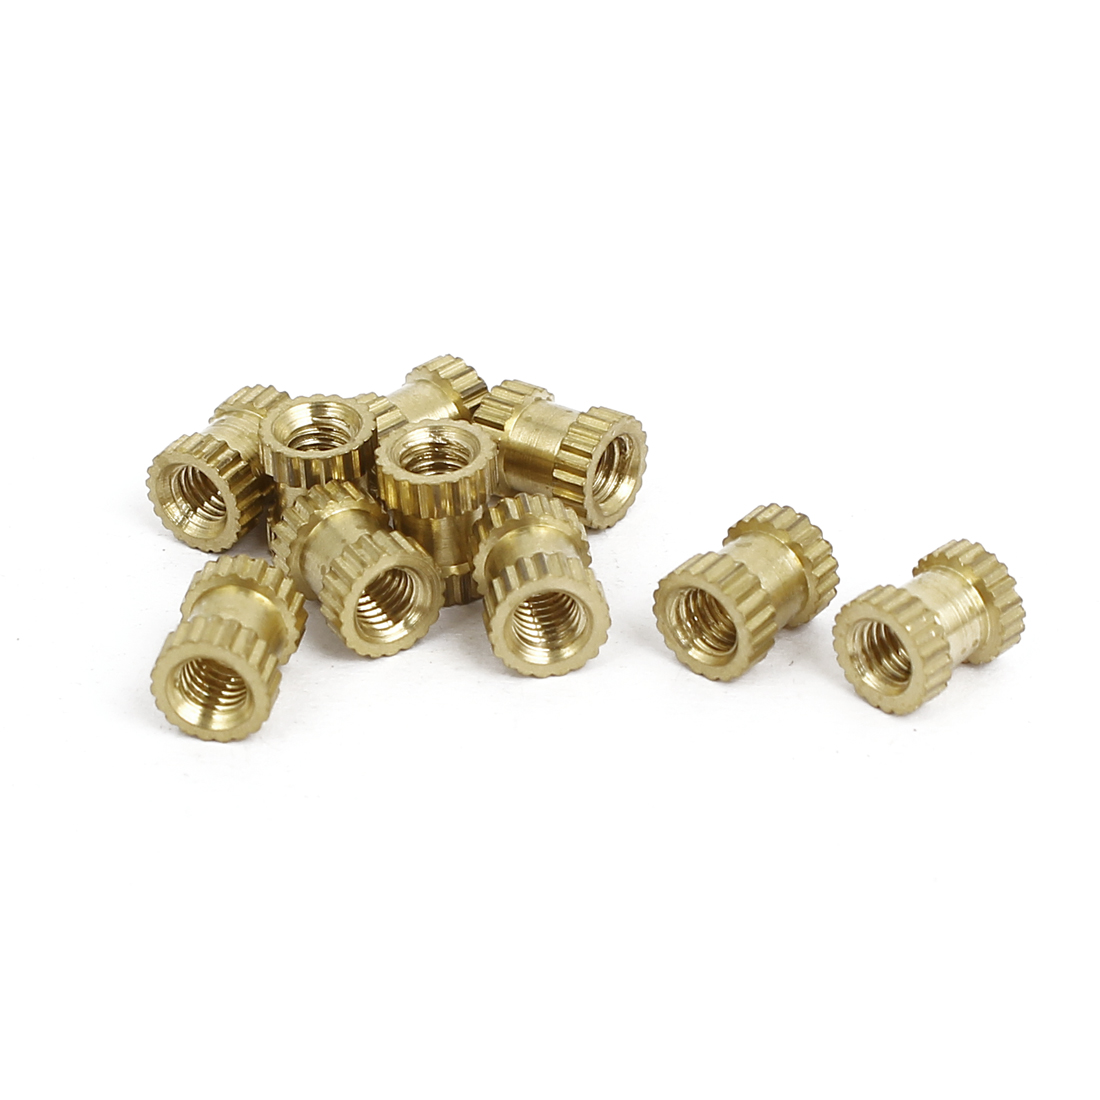 M3x6mmx5mm Female Threaded Brass Knurled Insert Embedded Nuts Gold Tone 10pcs